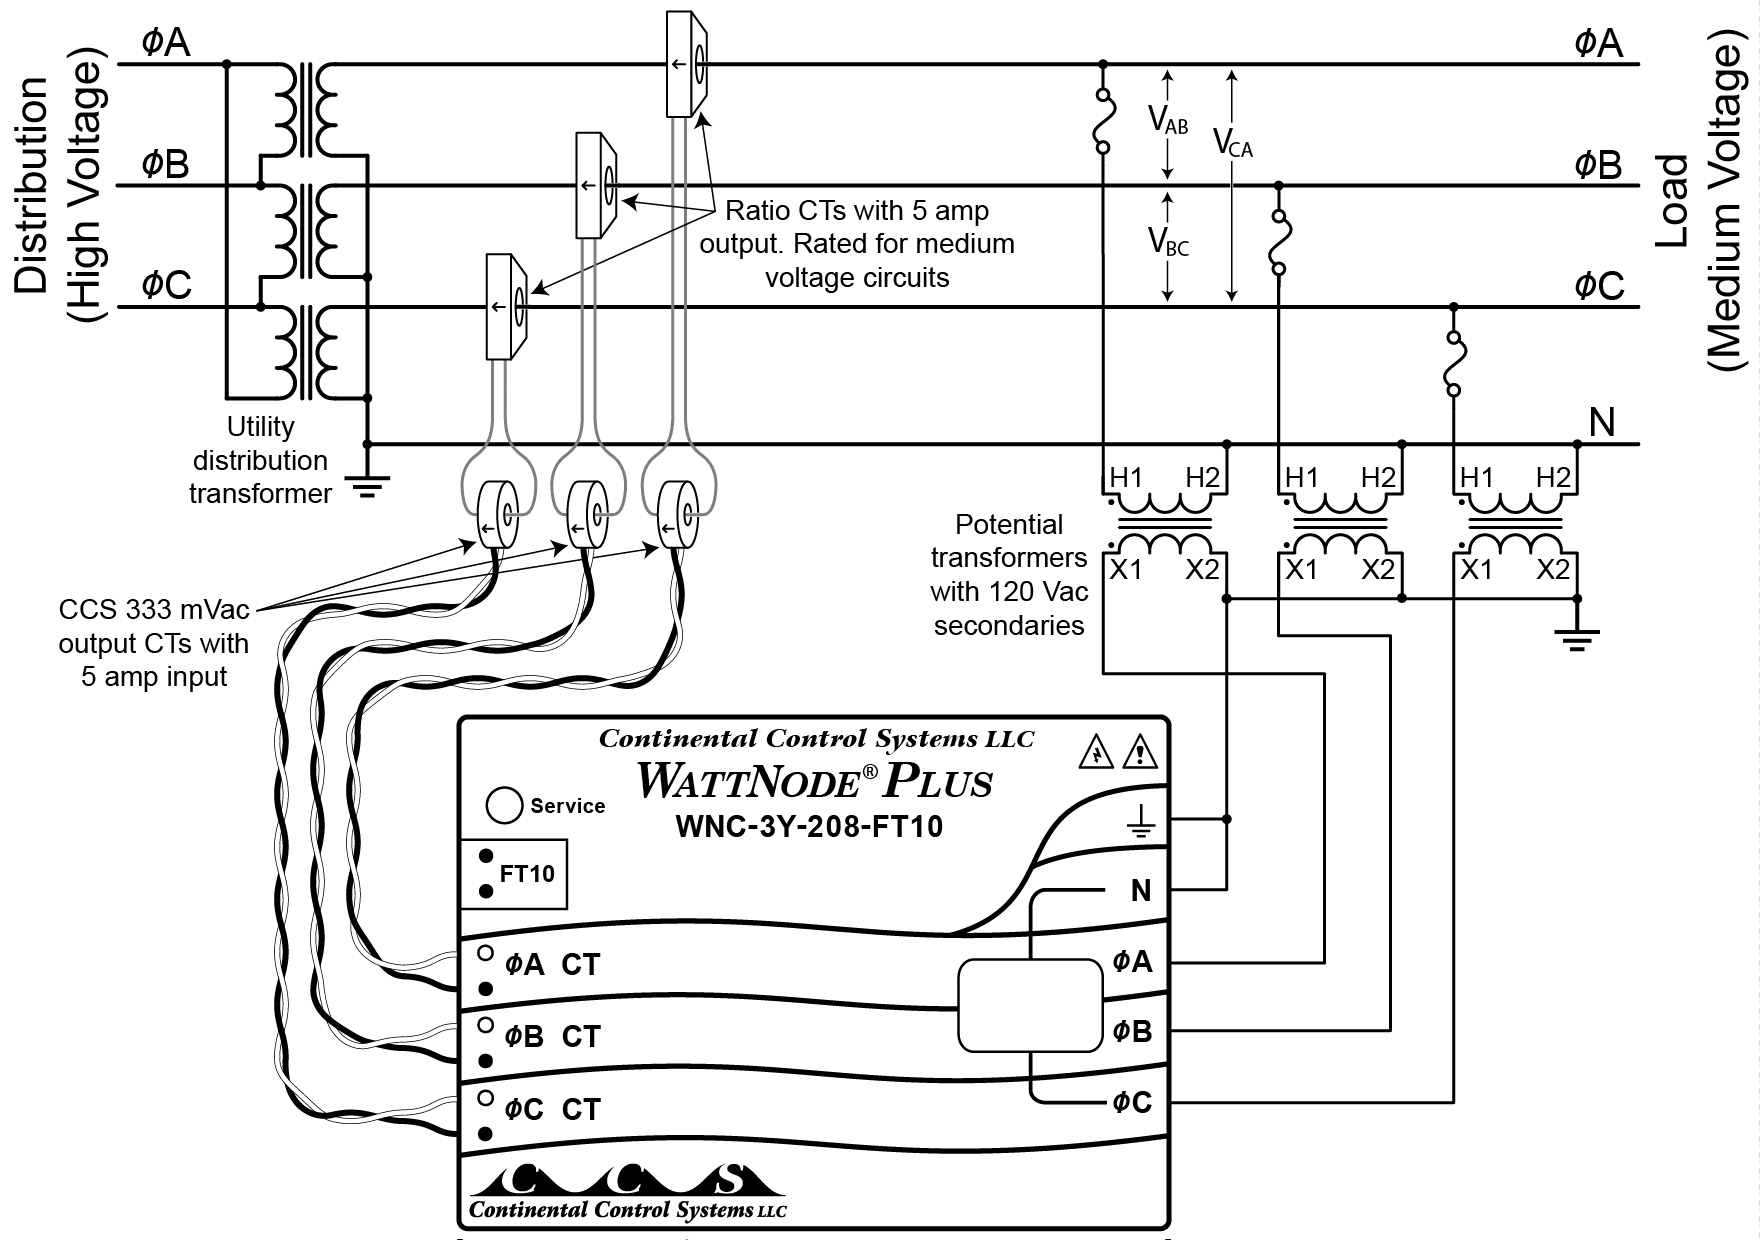 480v To 240v 120v Transformer Wiring Diagram. Wiring